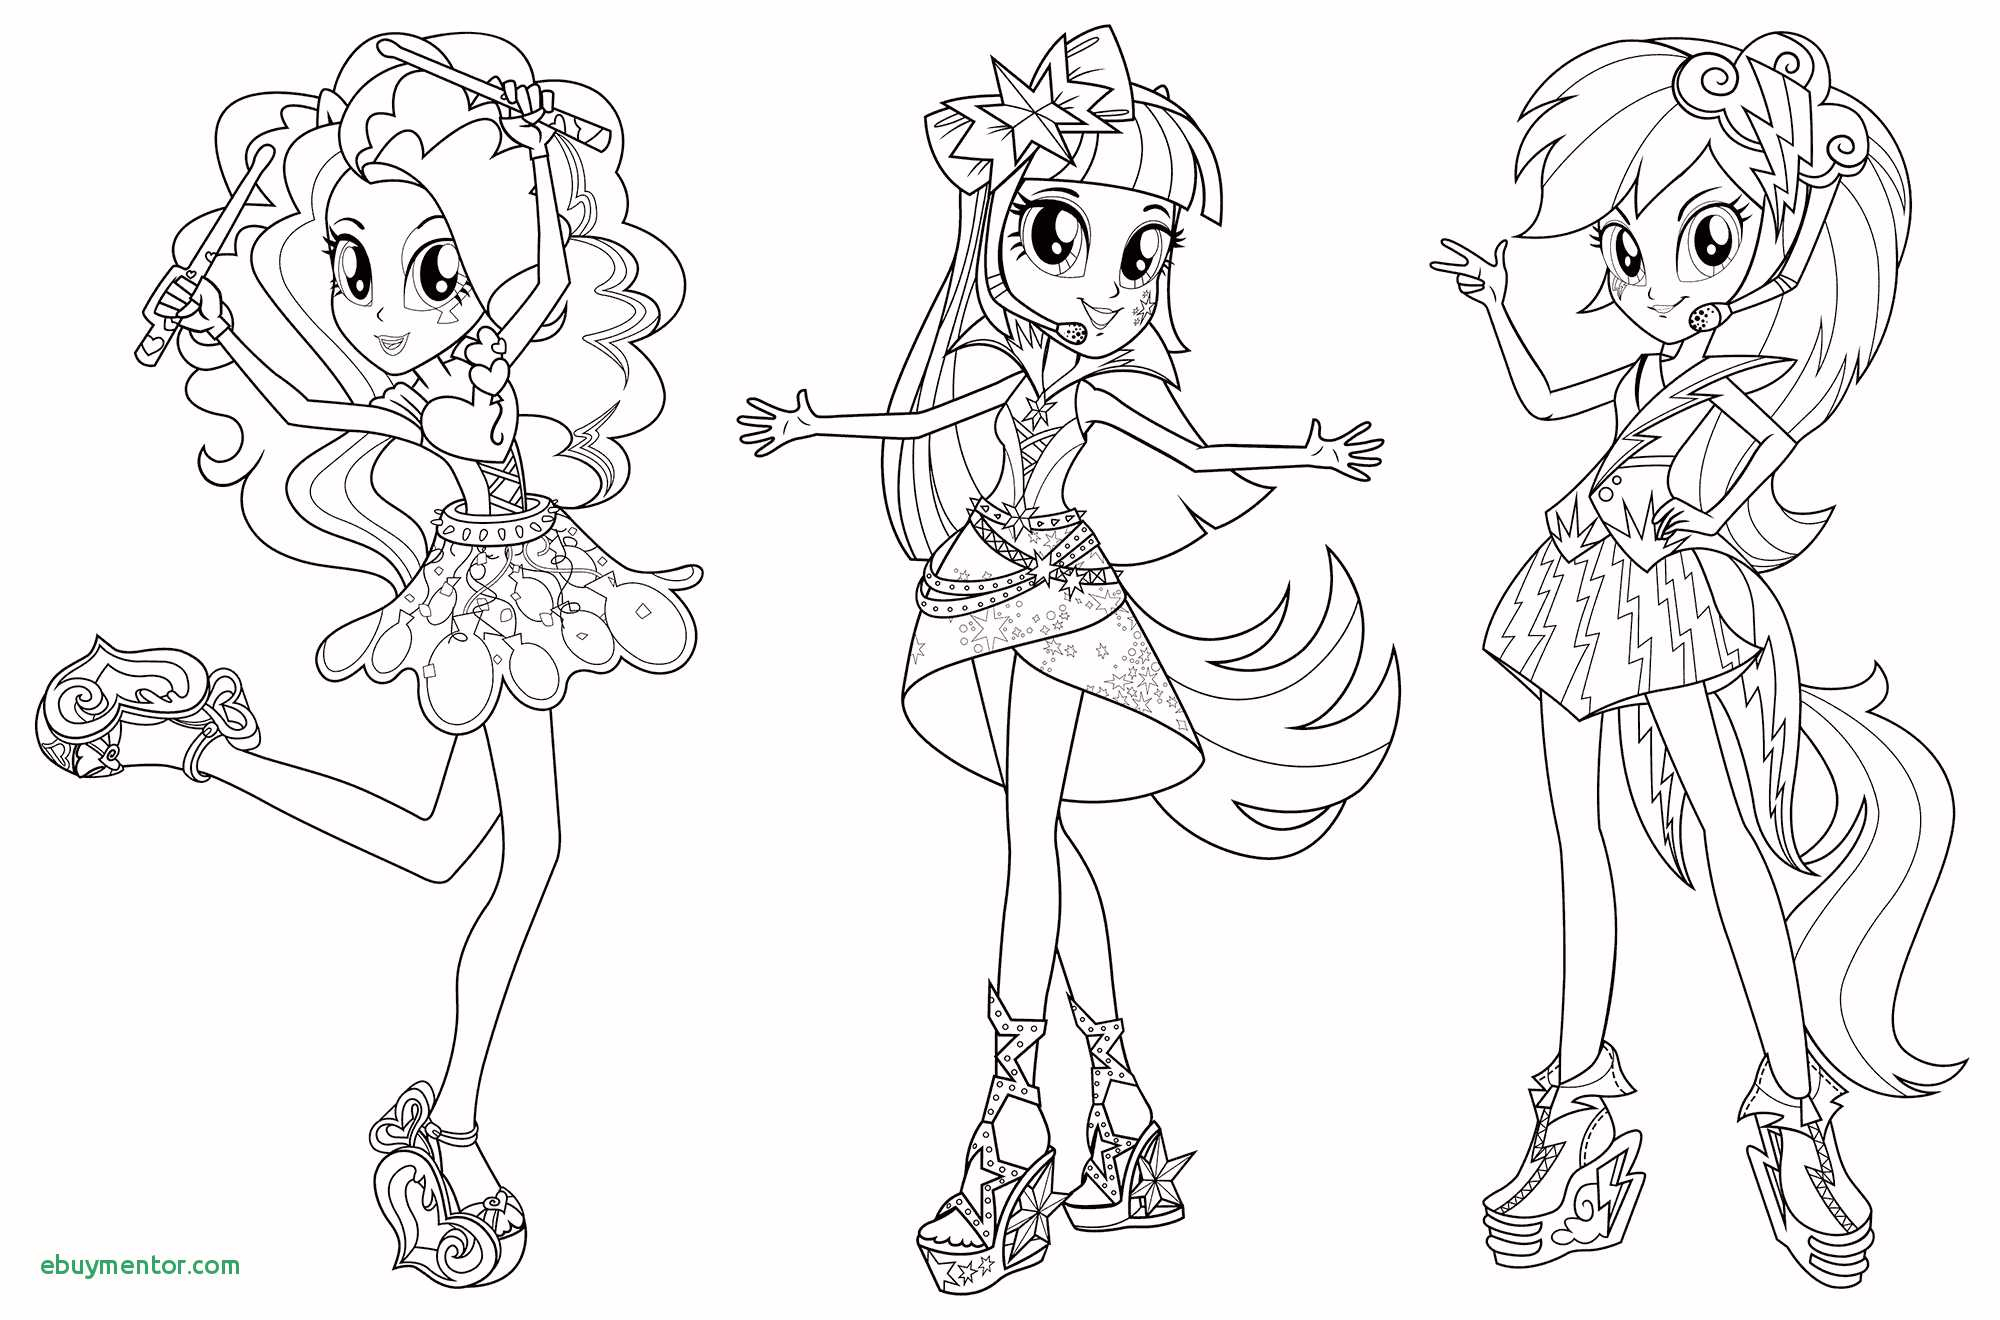 Equestria Girls Rainbow Rocks Coloring Pages  Collection 10i - Save it to your computer